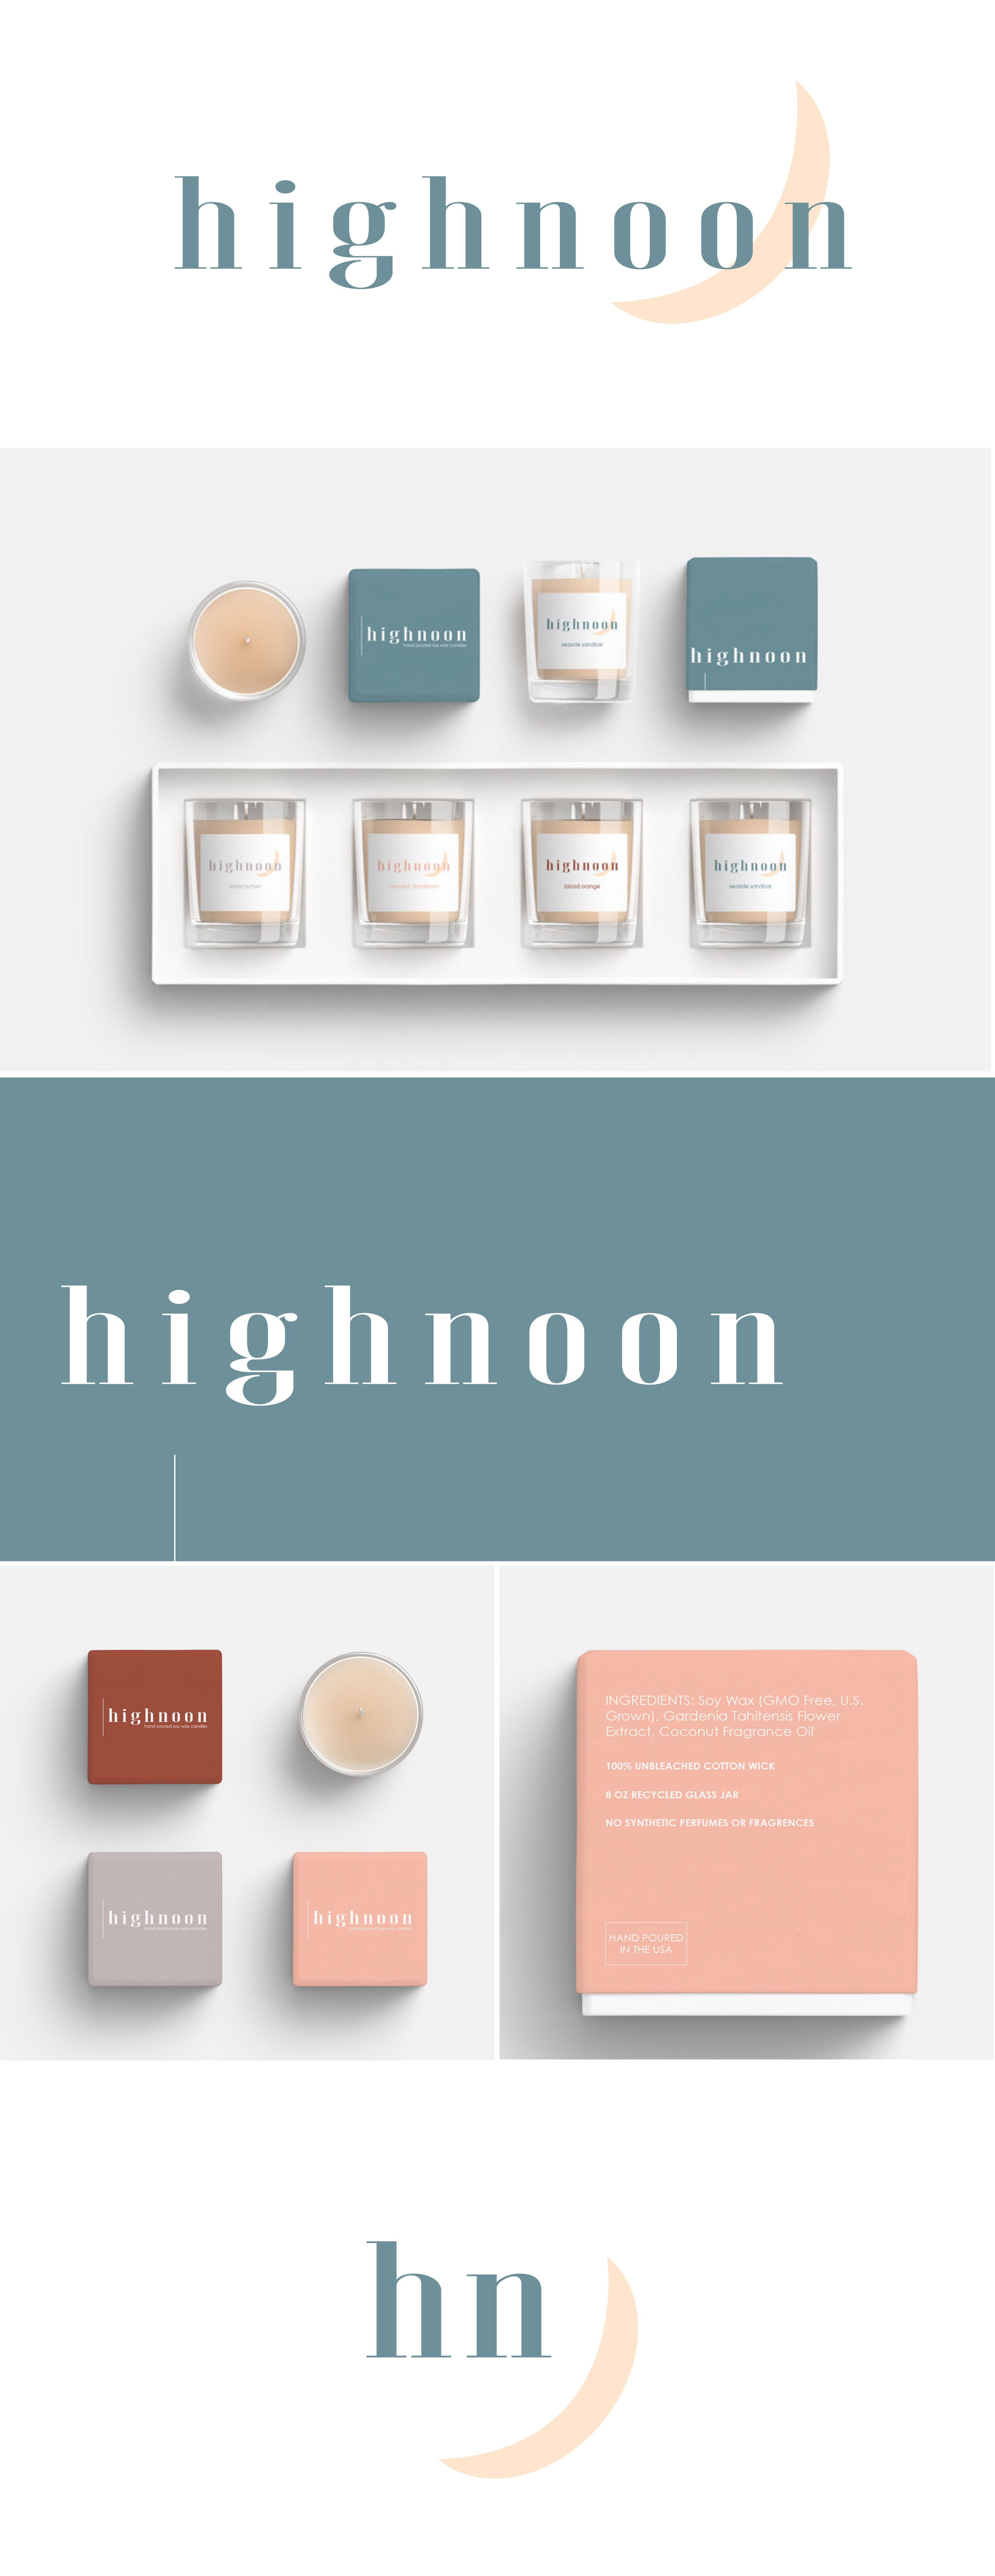 Highnoon Brand Designed By Here Now Creative Co The Design Is Clean And Light This Brand R Candle Packaging Design Candle Packaging Soy Candles Packaging